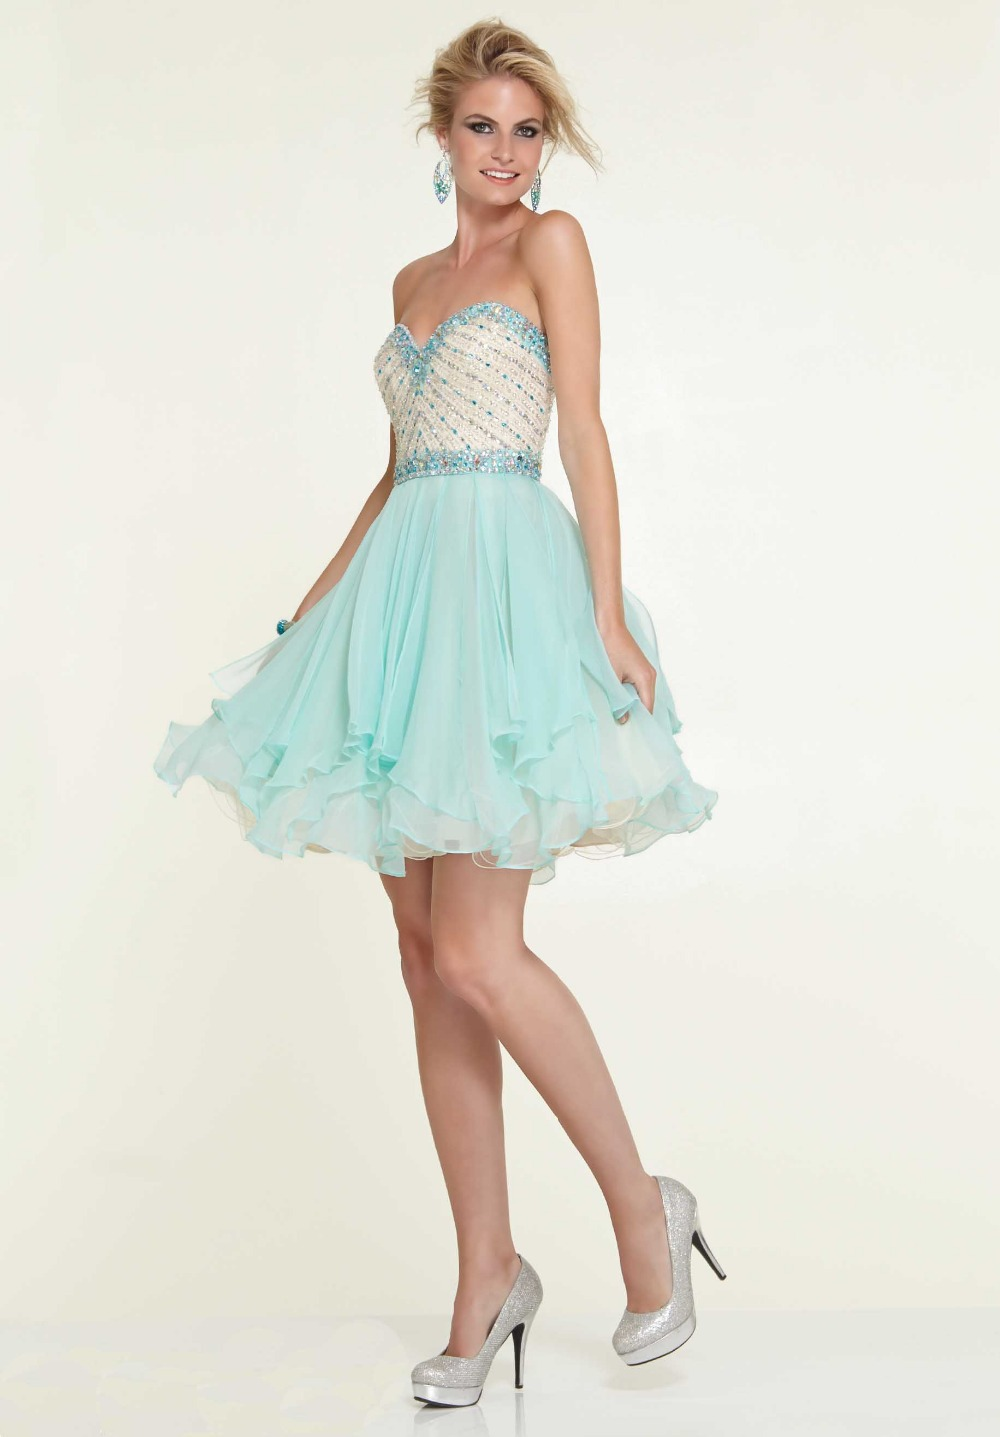 Homecoming Dresses Light Blue - Holiday Dresses